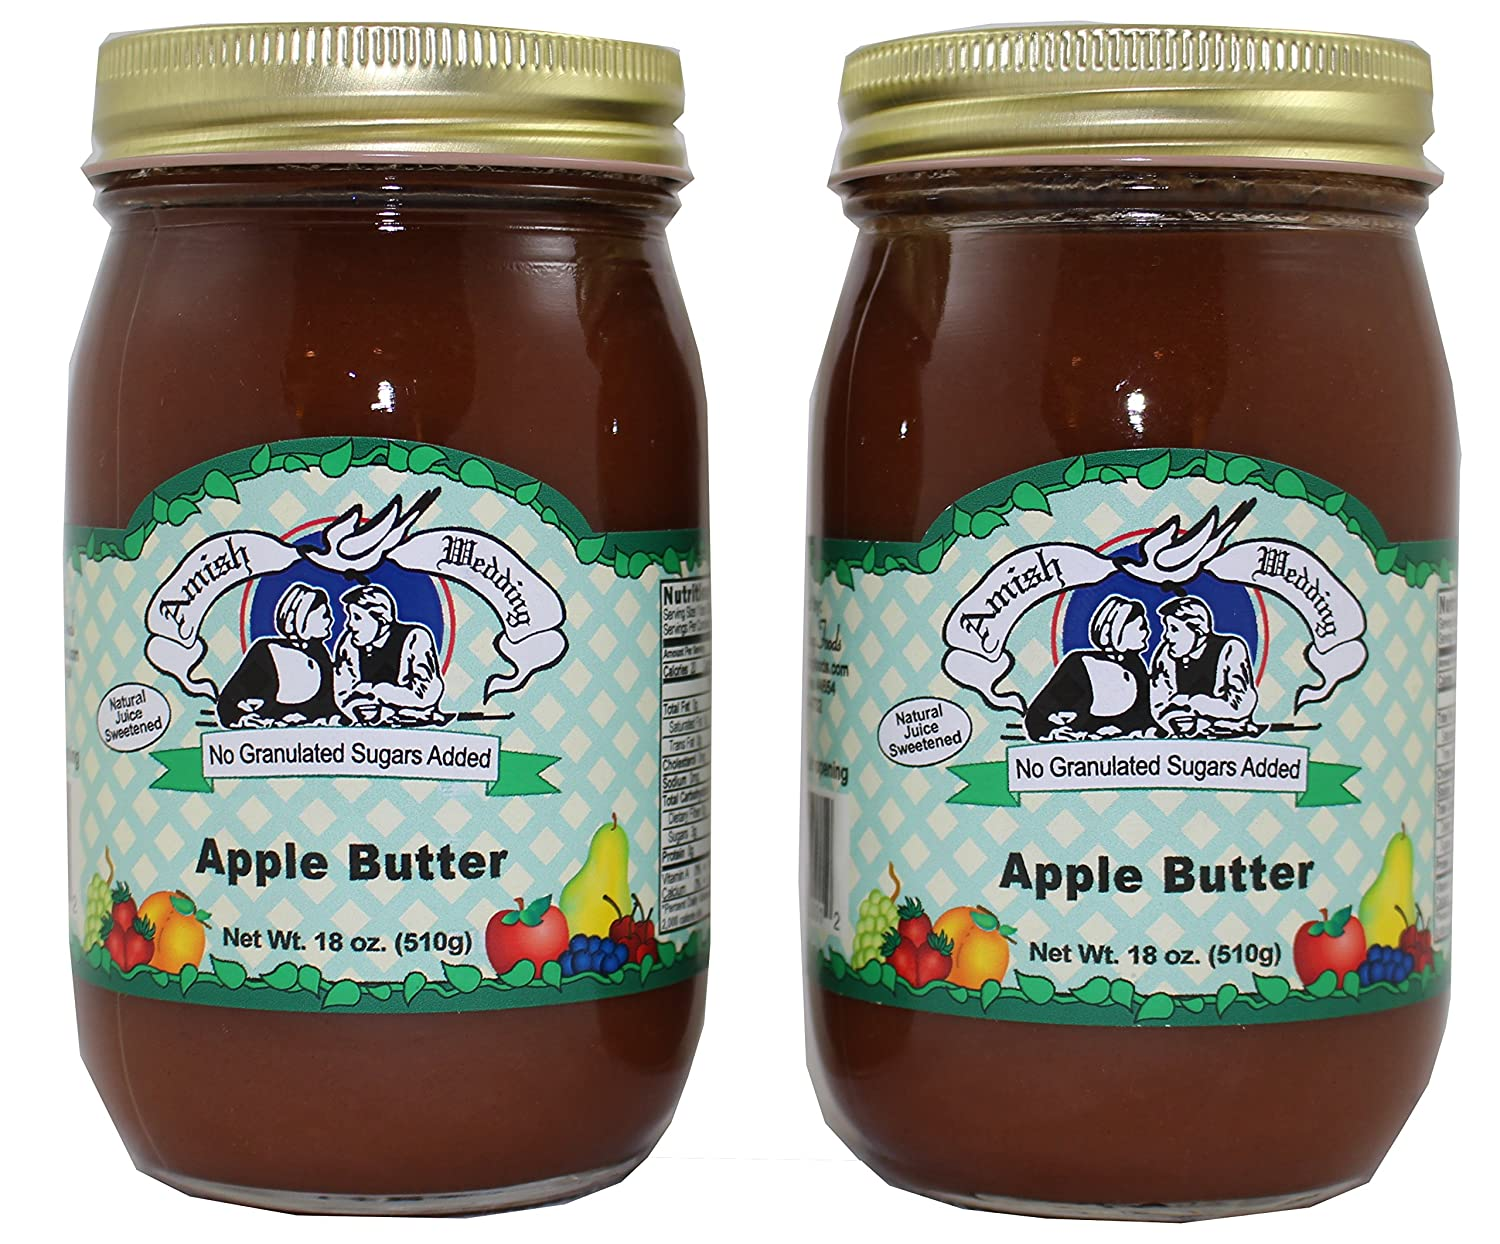 Amish Wedding All Natural Sugarless Apple Butter